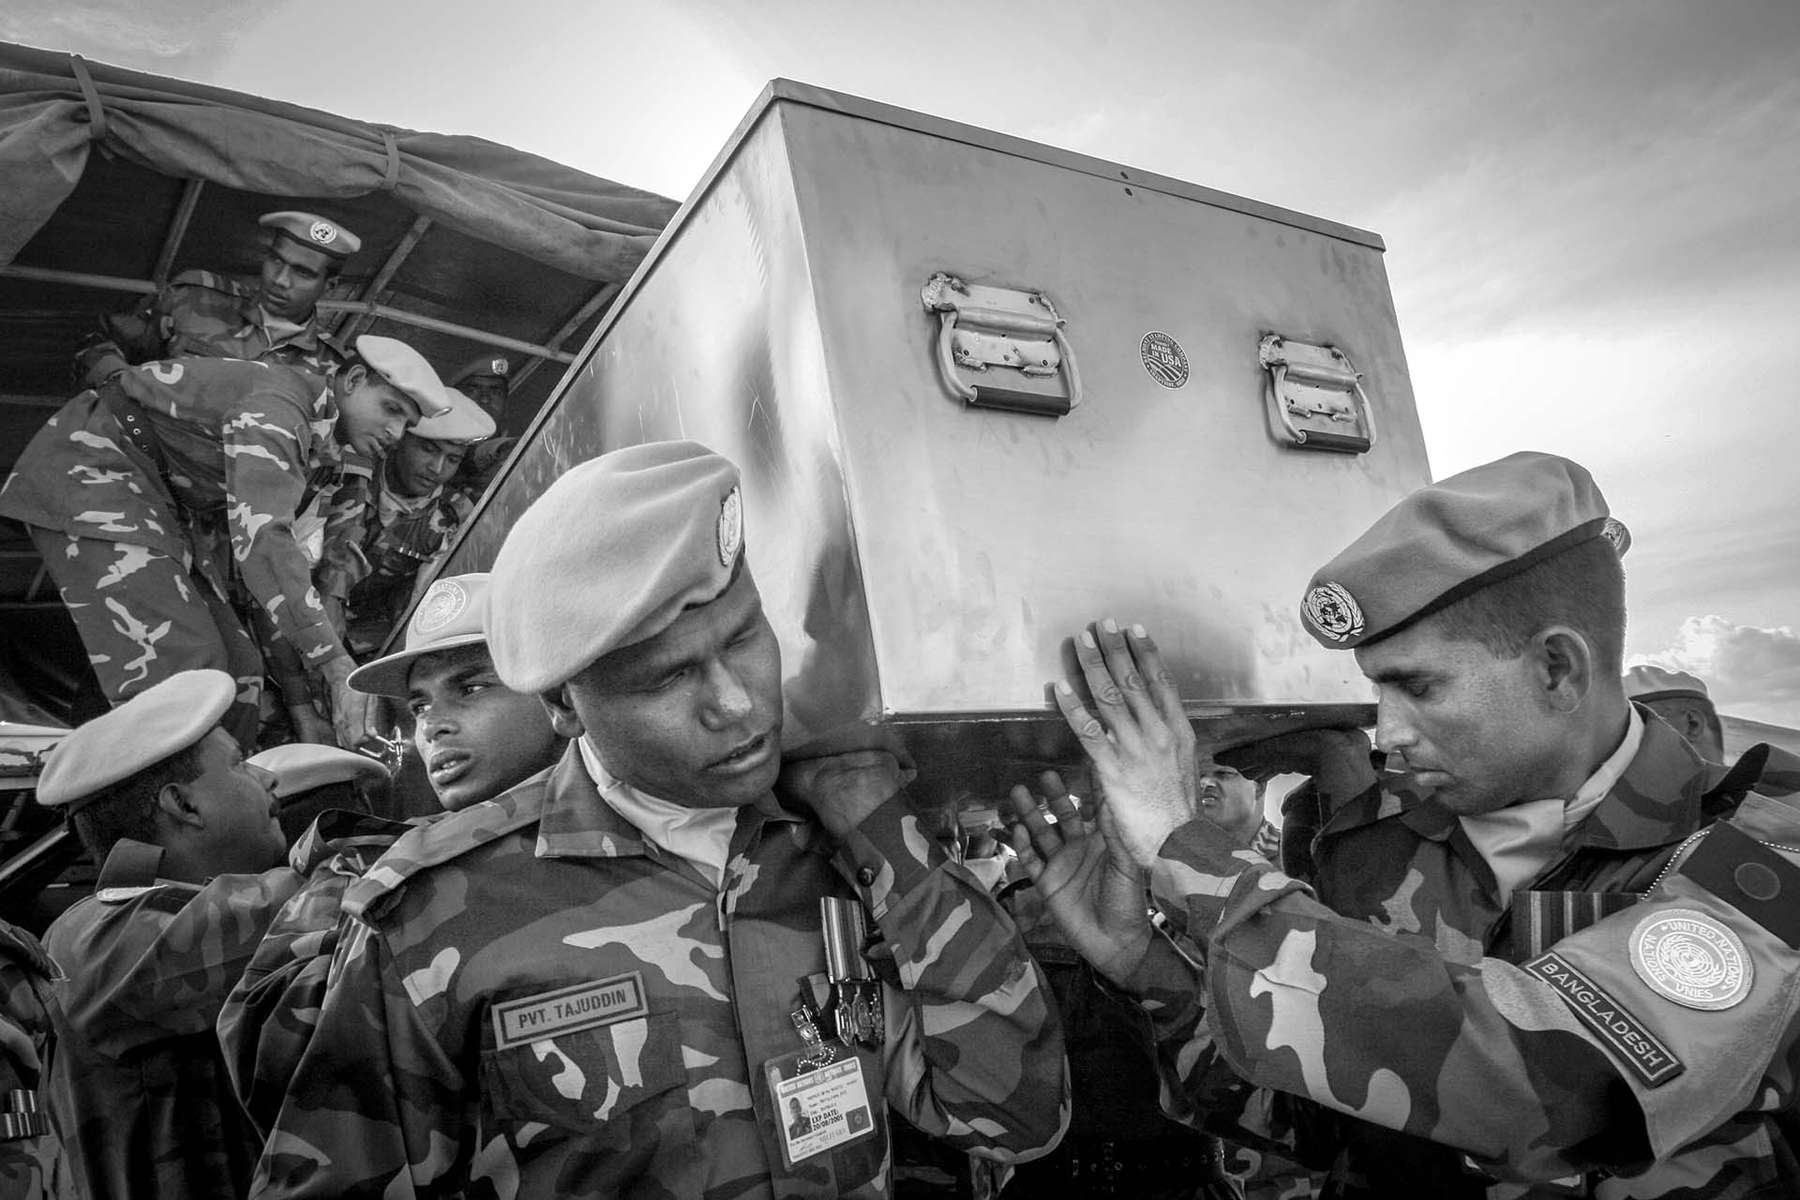 A body of Bangladeshi solder killed in the ambushed by militia groups is being carried out of a truck to a Muslim funeral in Bunia.